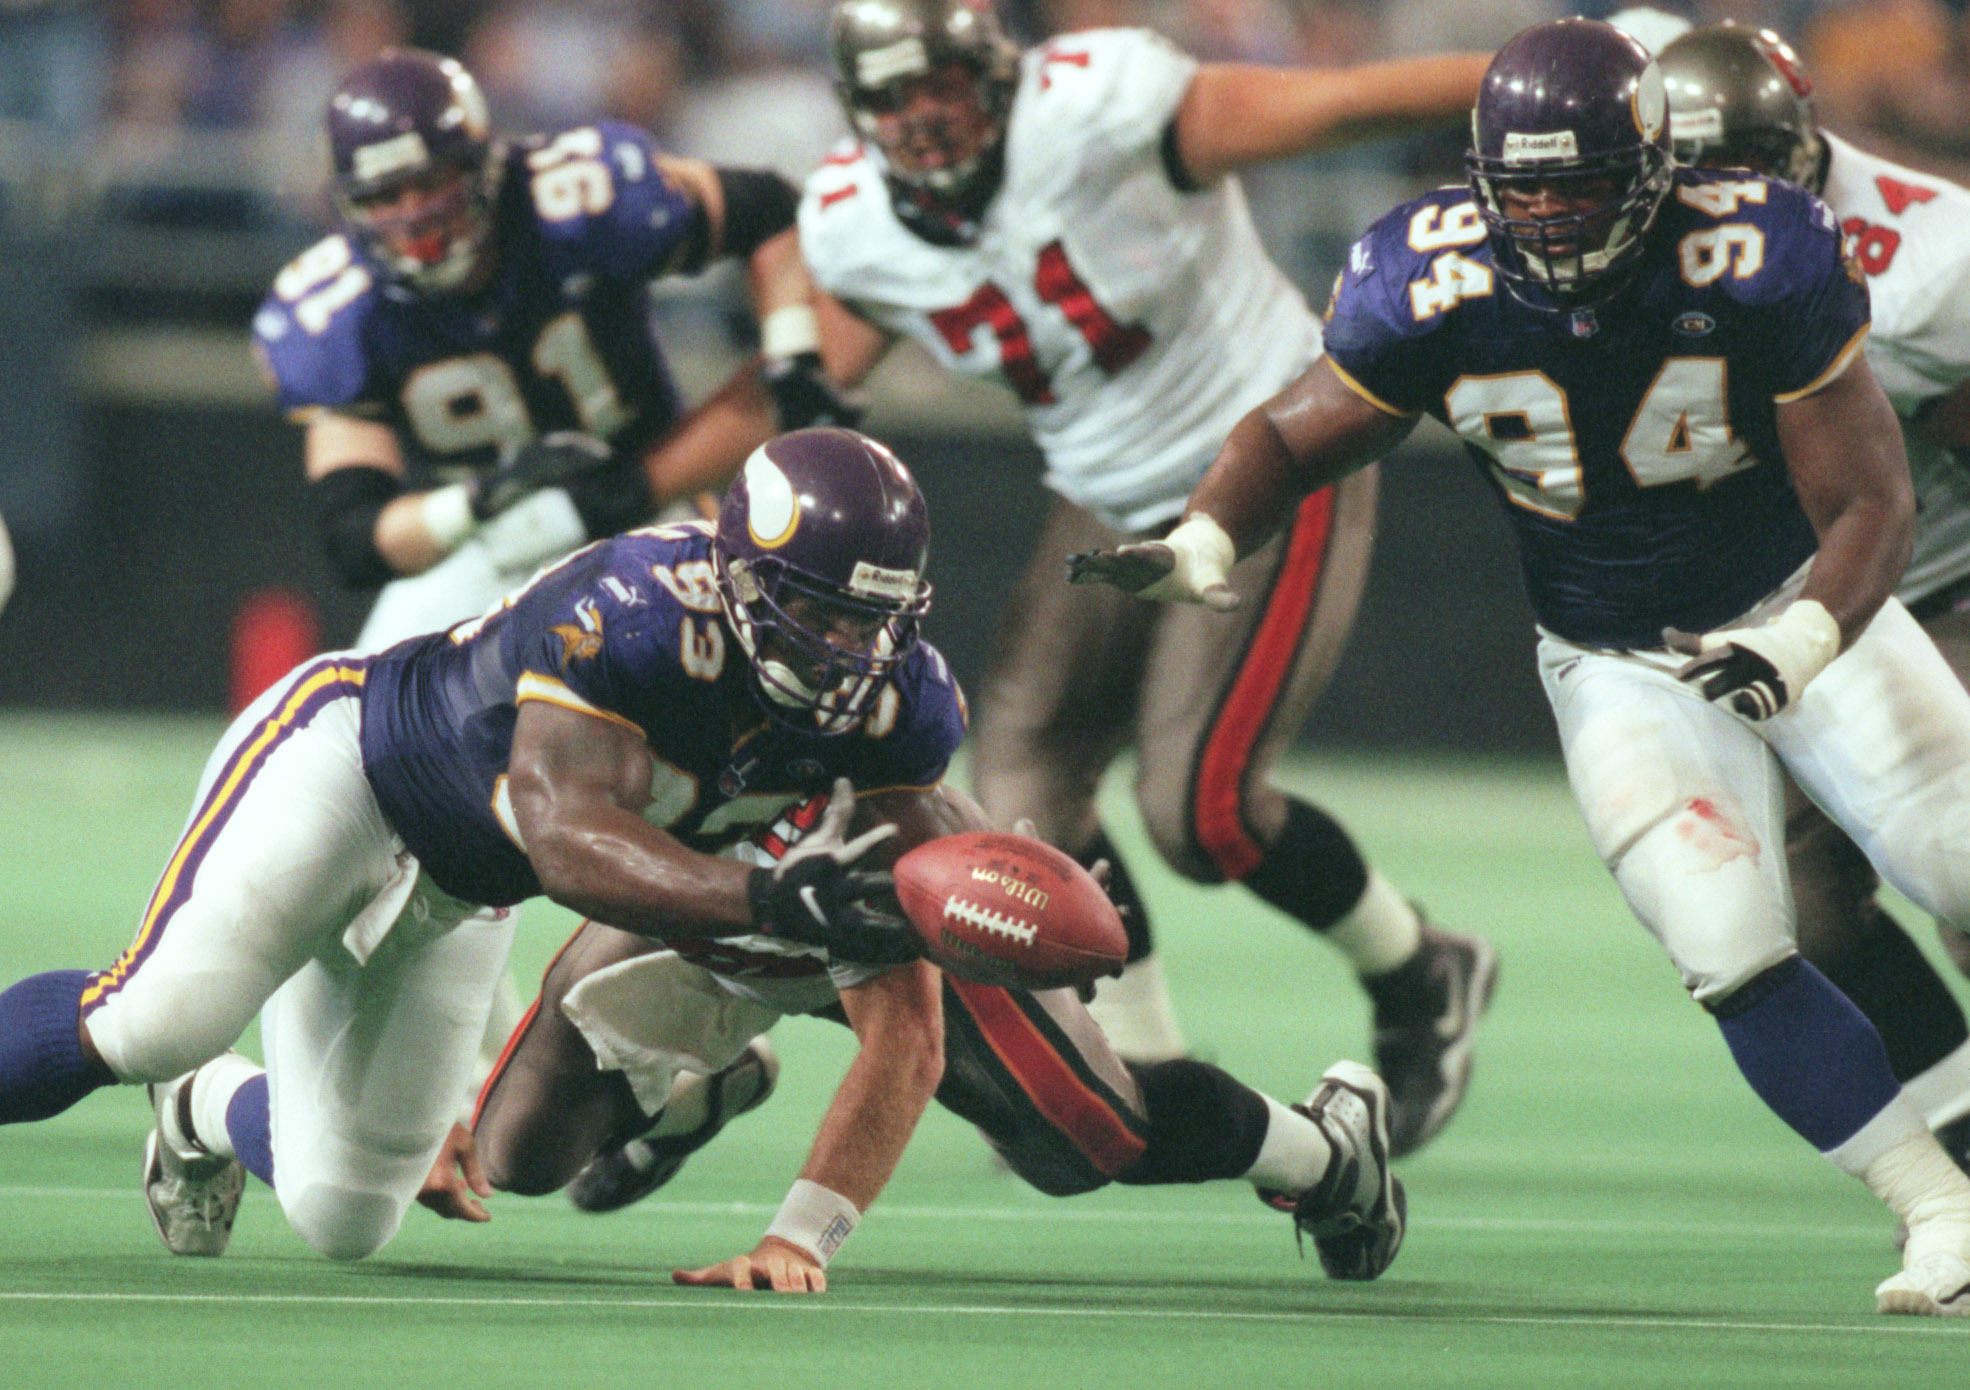 Oct. 3-Tampa Bay - Minnesota Vikings — Minneapolis Mn, Sunday 10/3/99 Vikings vs Tampa----Vikings John Randle scopes up a Trent Dilfer fumble that he caused early in the 4h quarter as his teamate Tony Williams looks on.